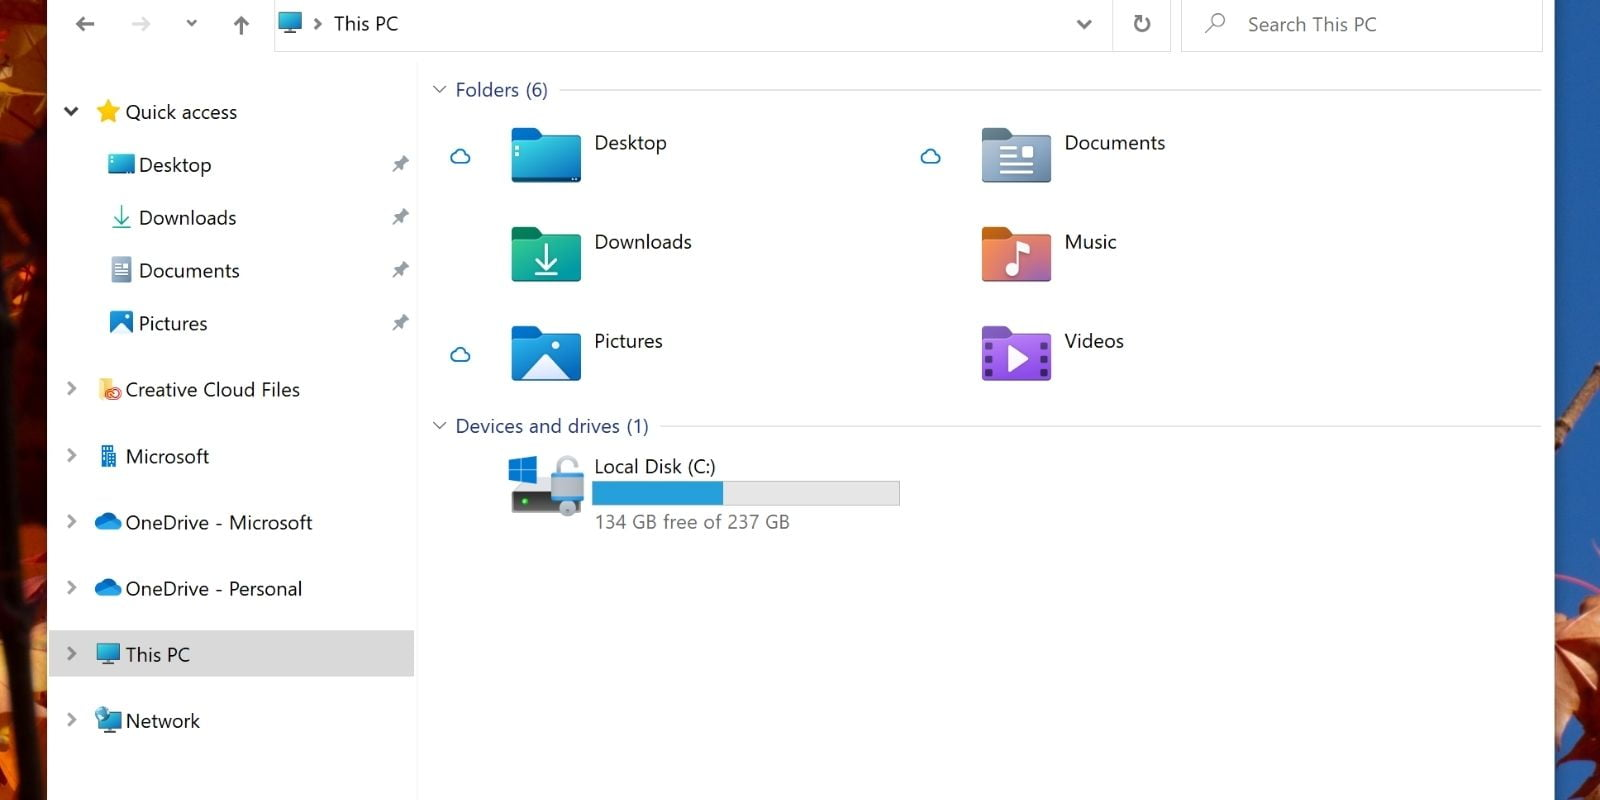 New File Explorer icons are coming to Windows 10